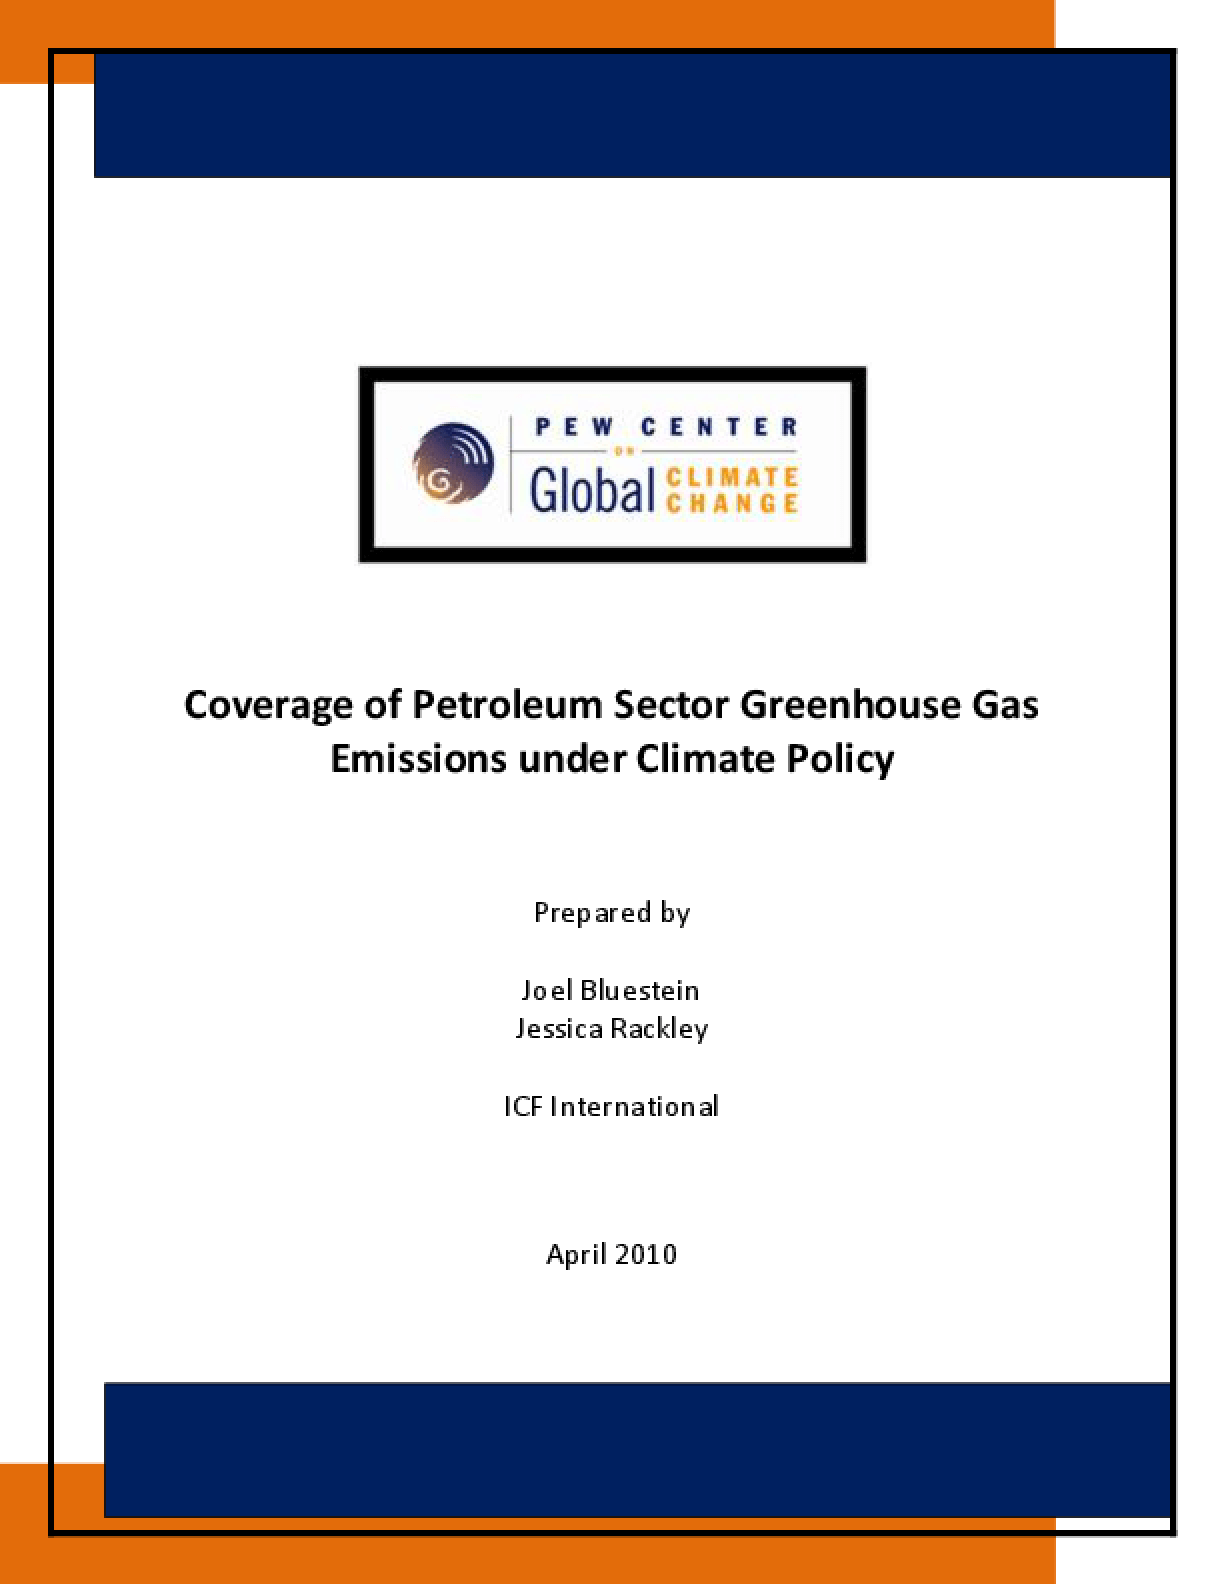 Coverage of Greenhouse Gas Emissions From Petroleum Use Under Climate Policy